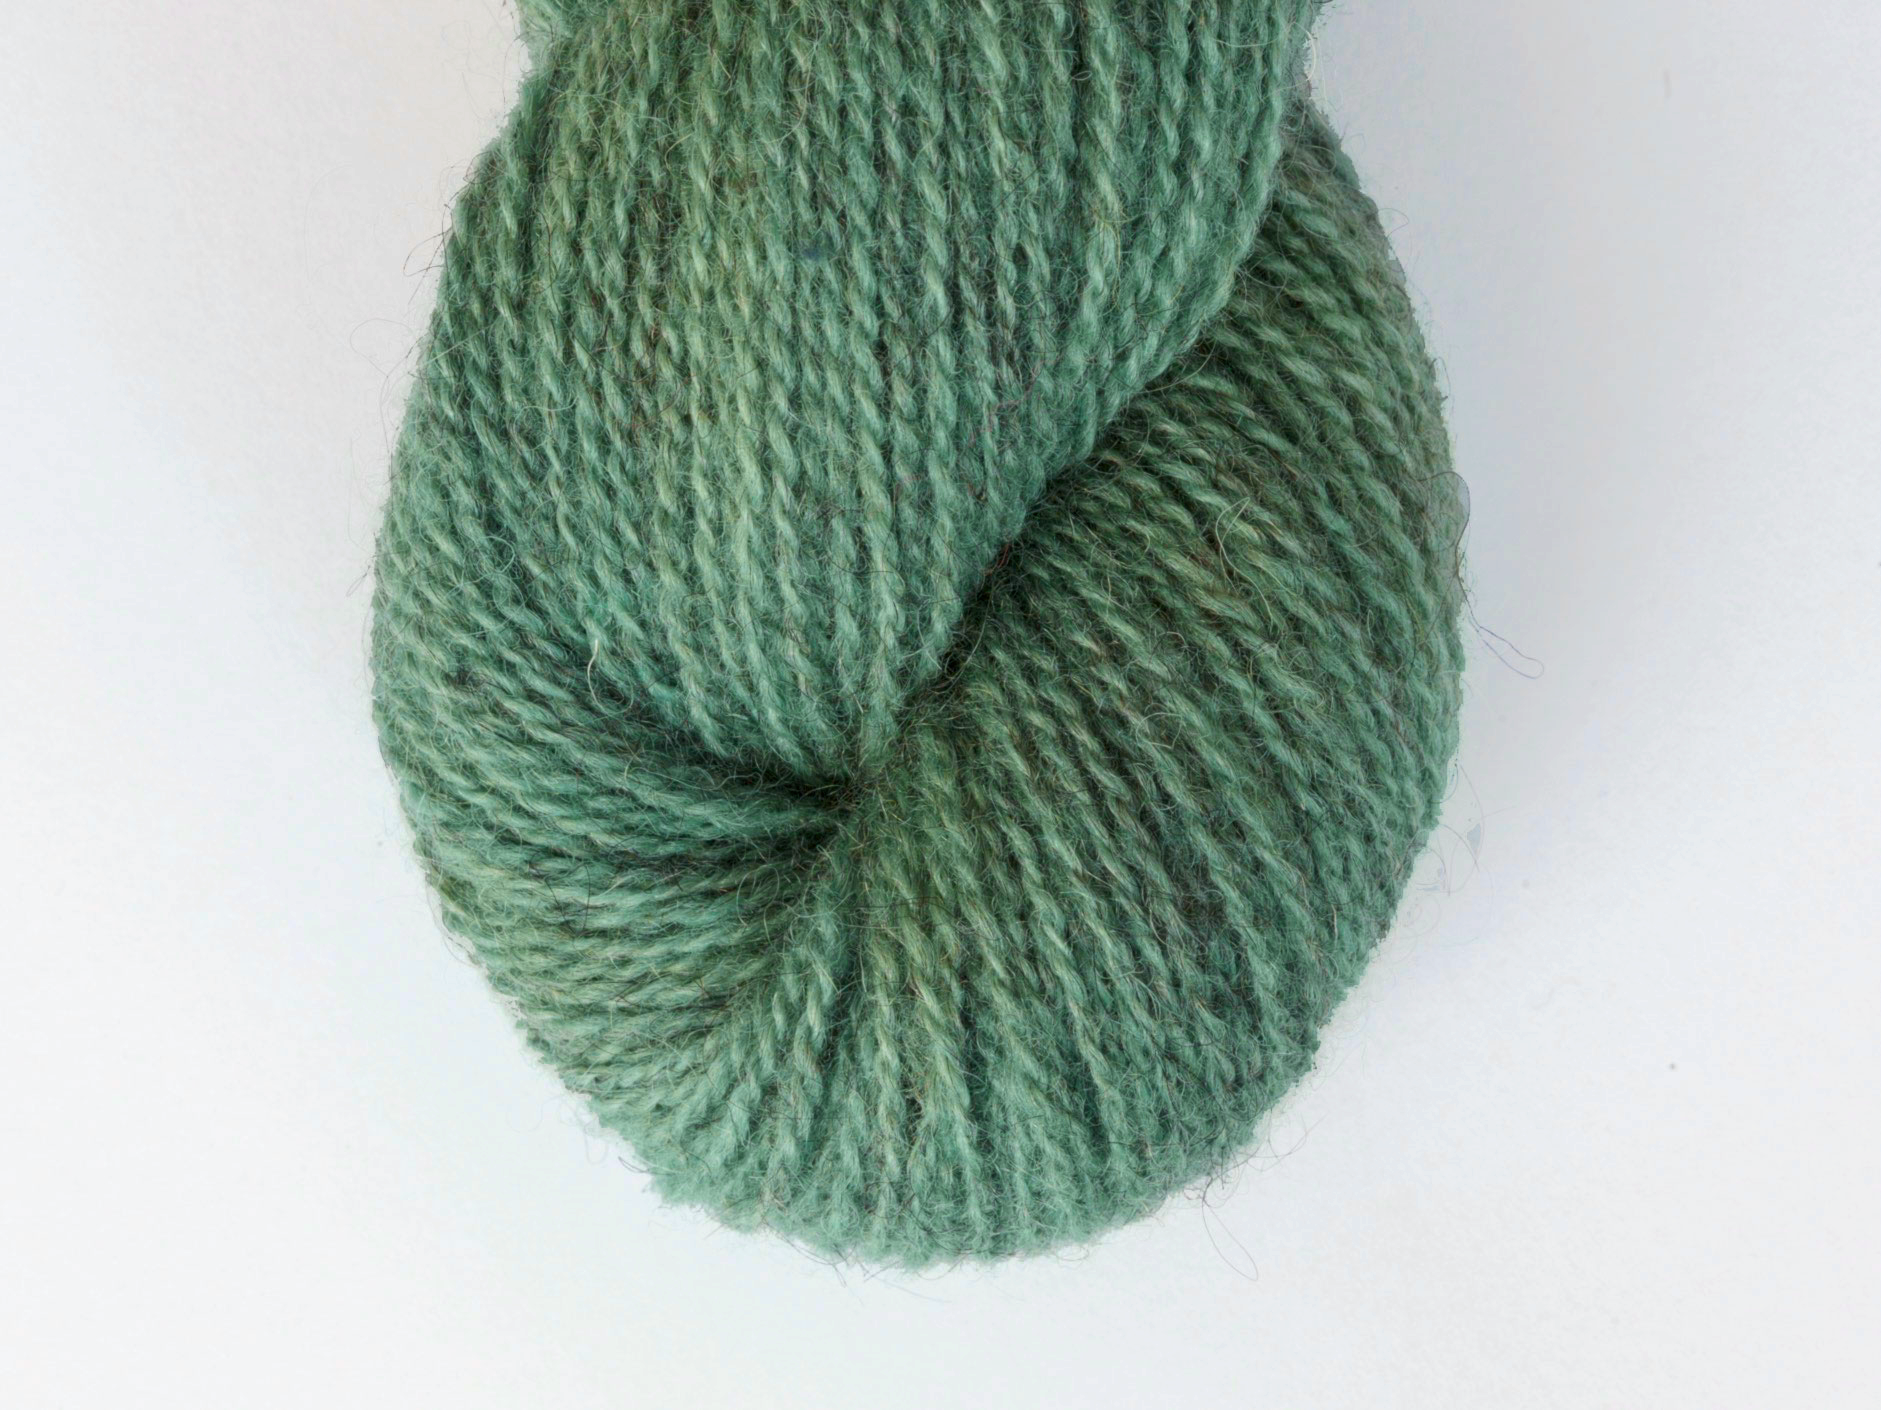 Bohus Stickning garn yarn BS 31 green wool